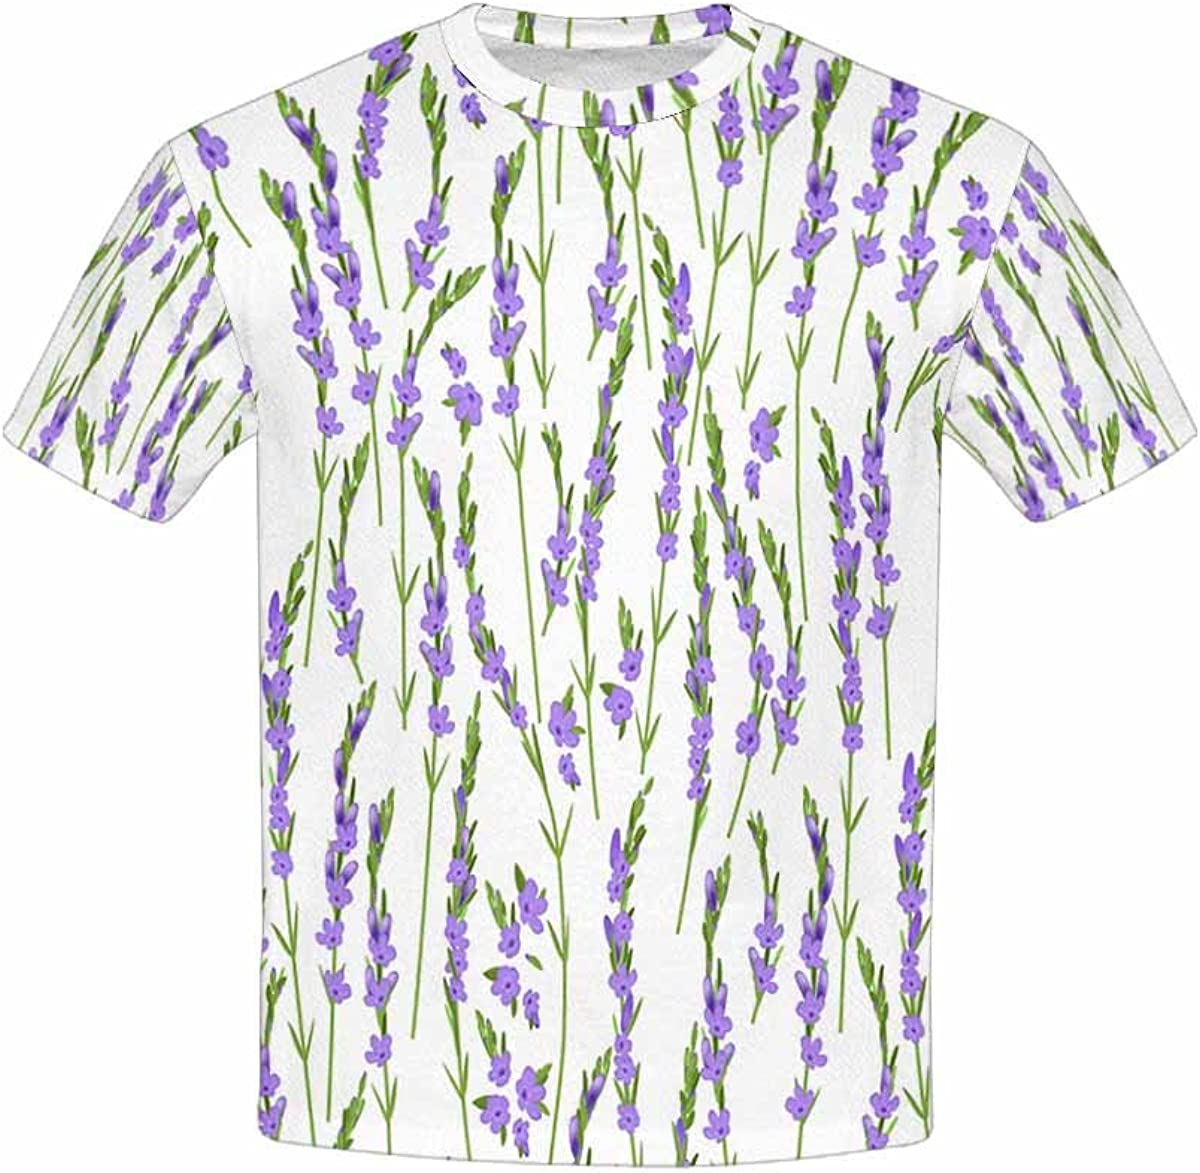 XS-XL INTERESTPRINT Childs T-Shirt Cactus Plant